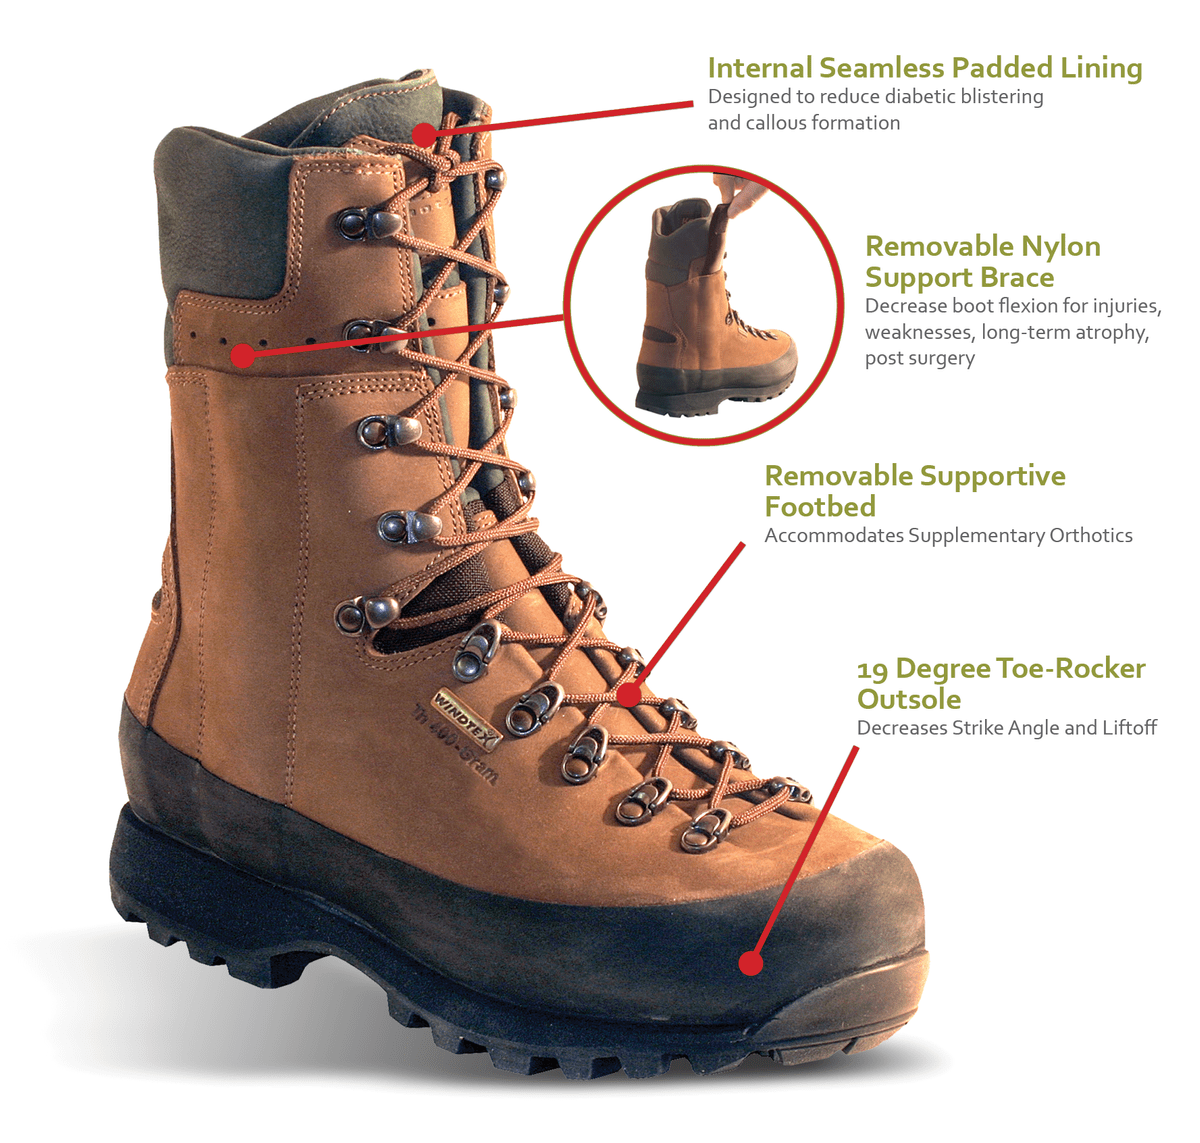 EverStep Orthopedic Boot Features